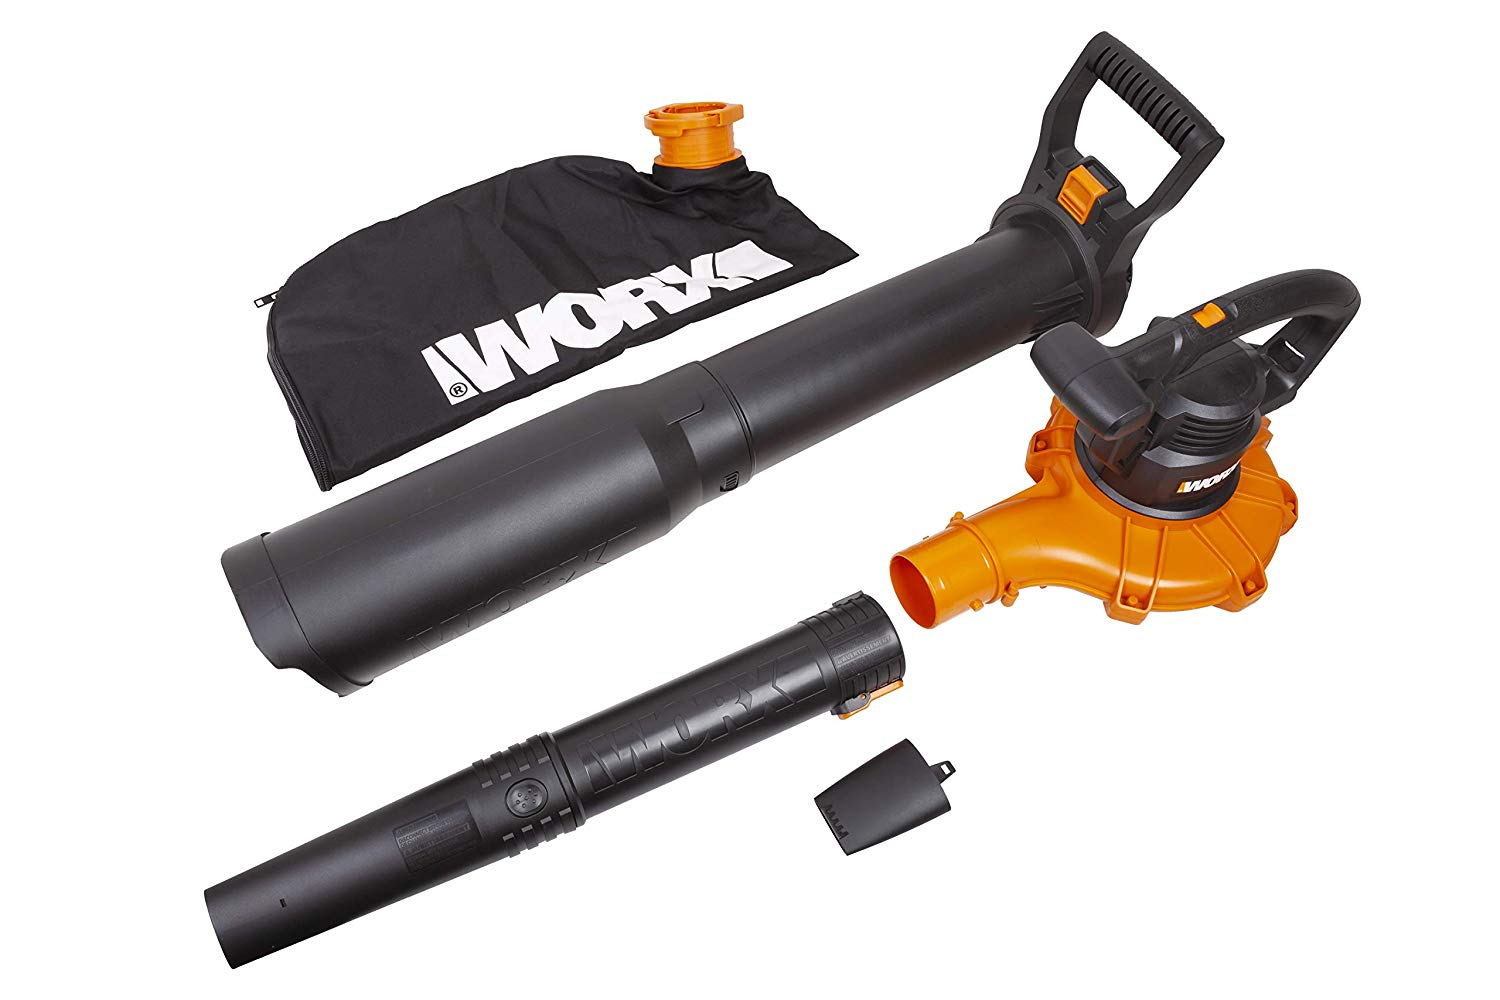 Worx WG518 2-Speed Leaf Blower